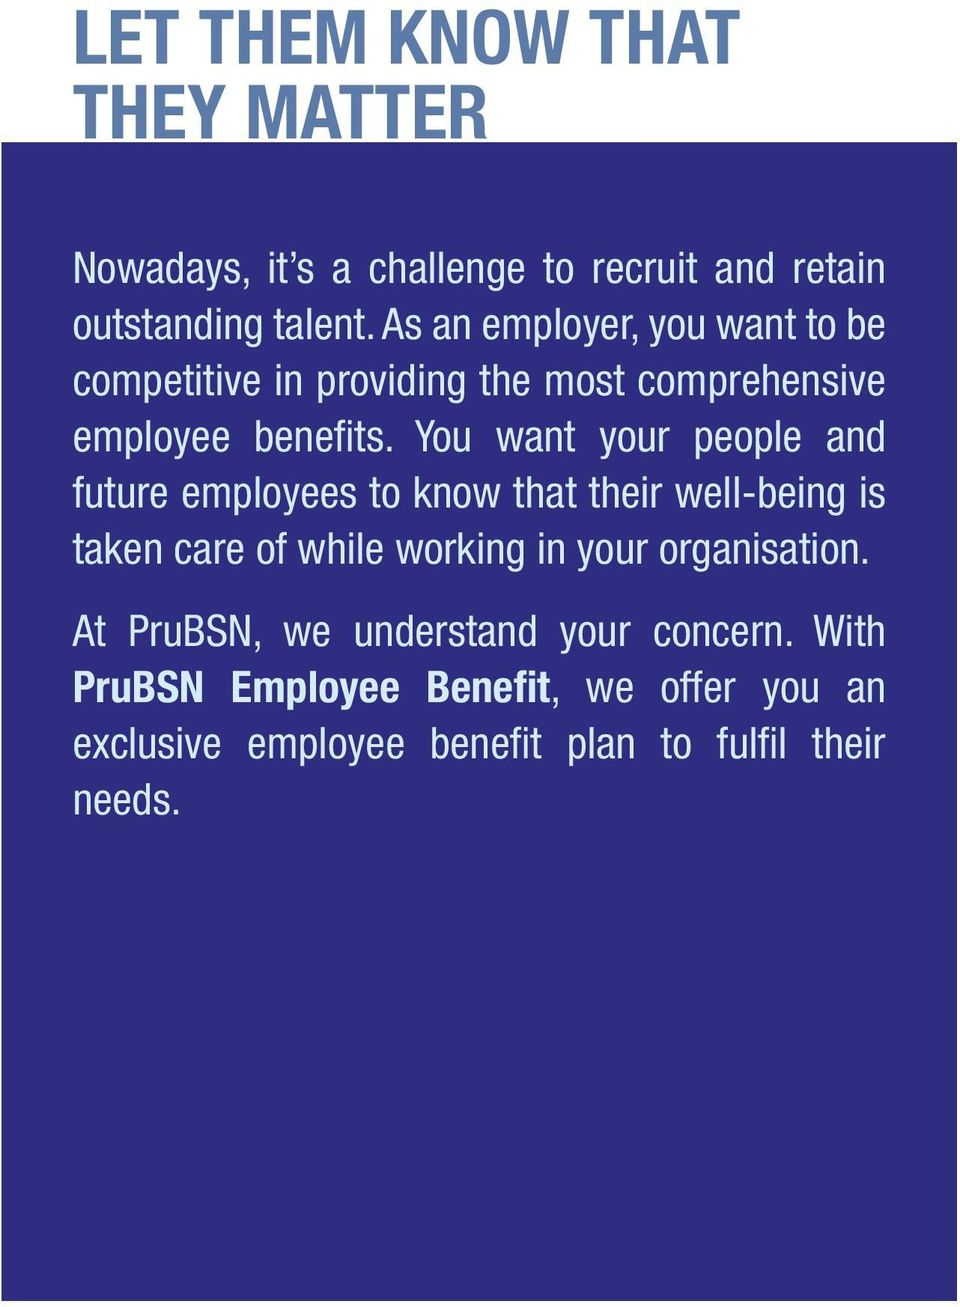 You want your people and future employees to know that their well-being is taken care of while working in your